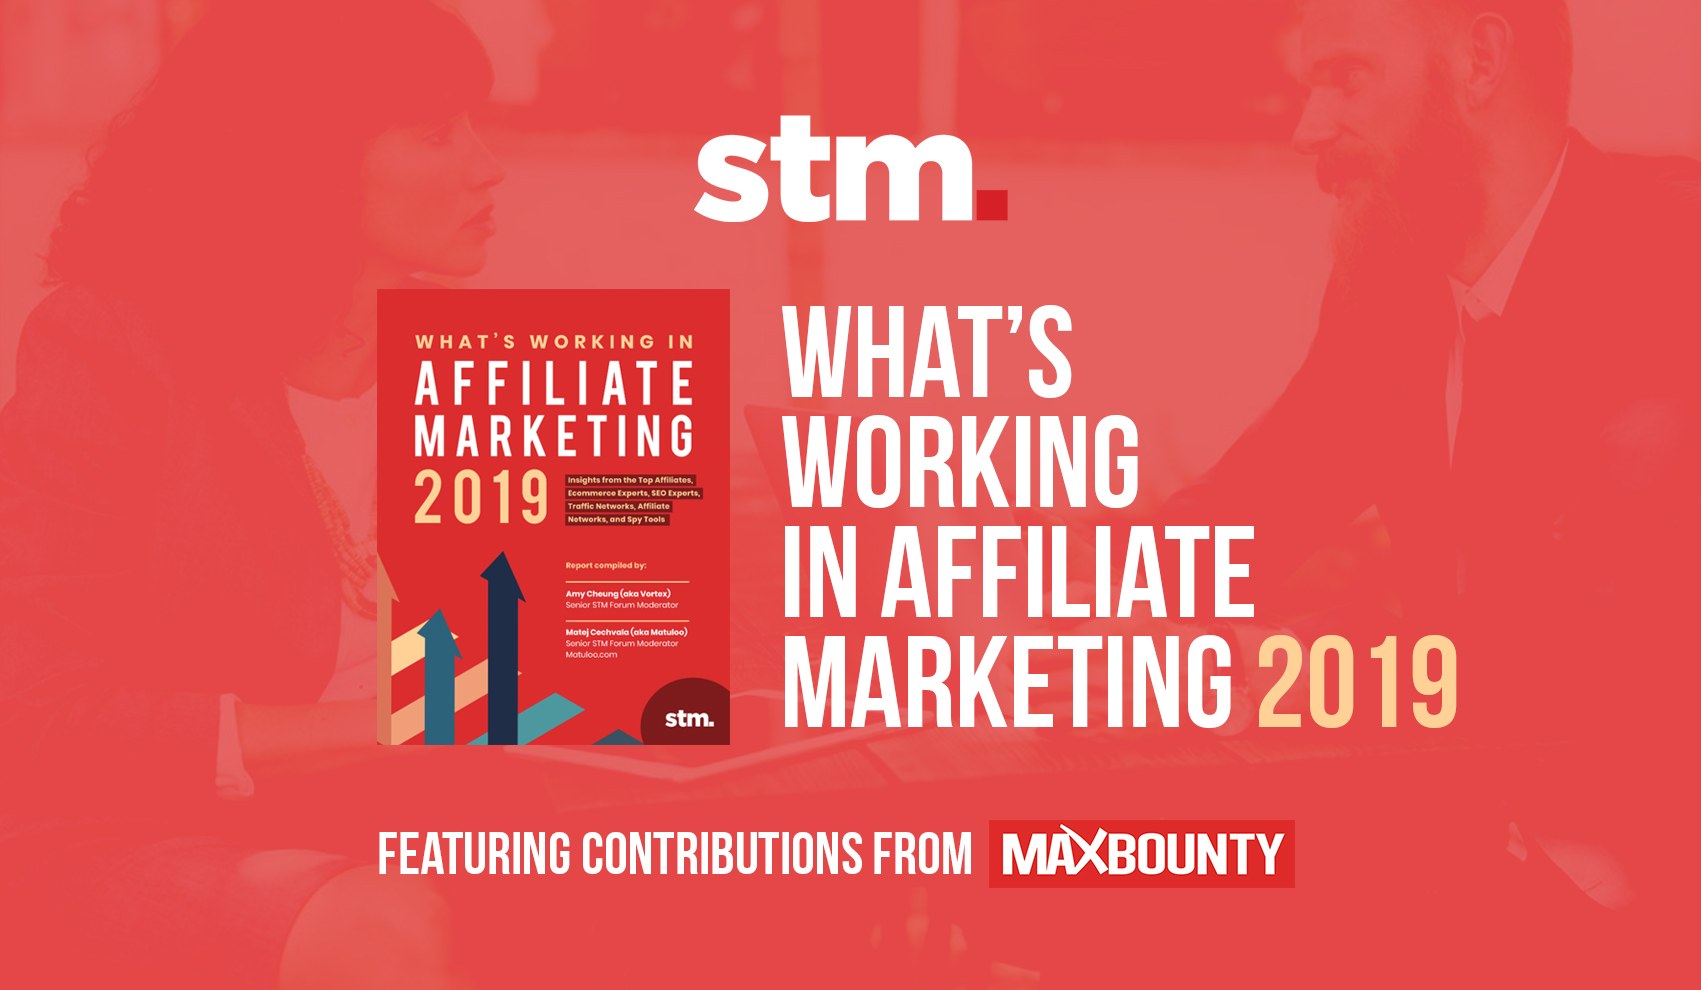 MaxBounty Featured in STM's FREE 'What's Working in Affiliate Marketing 2019' Report